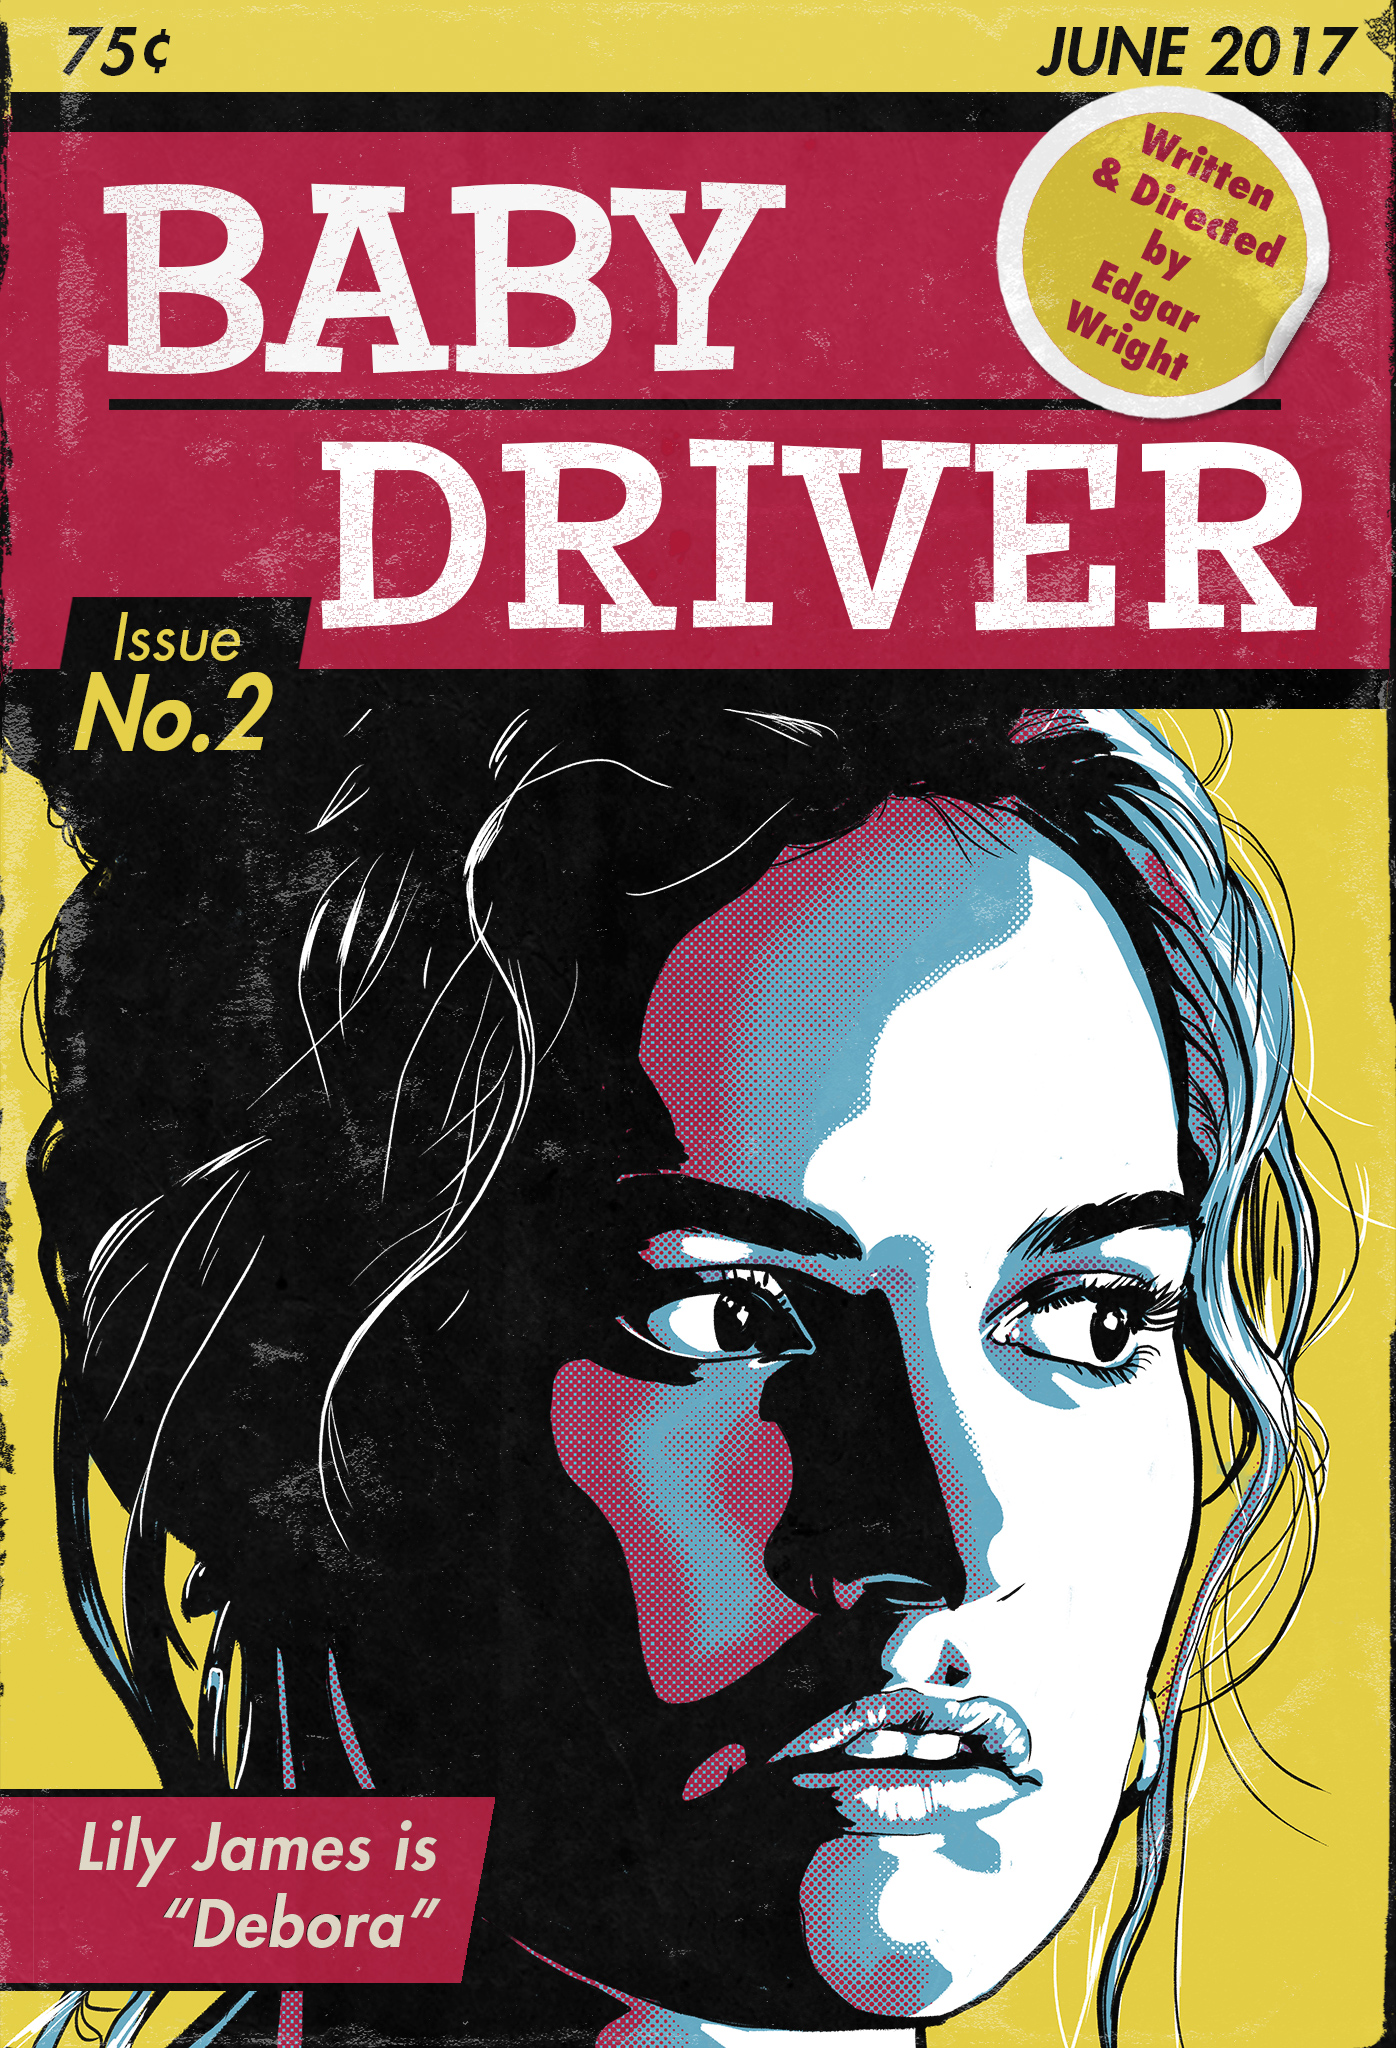 Baby Driver Poster No. 2 - Lily James